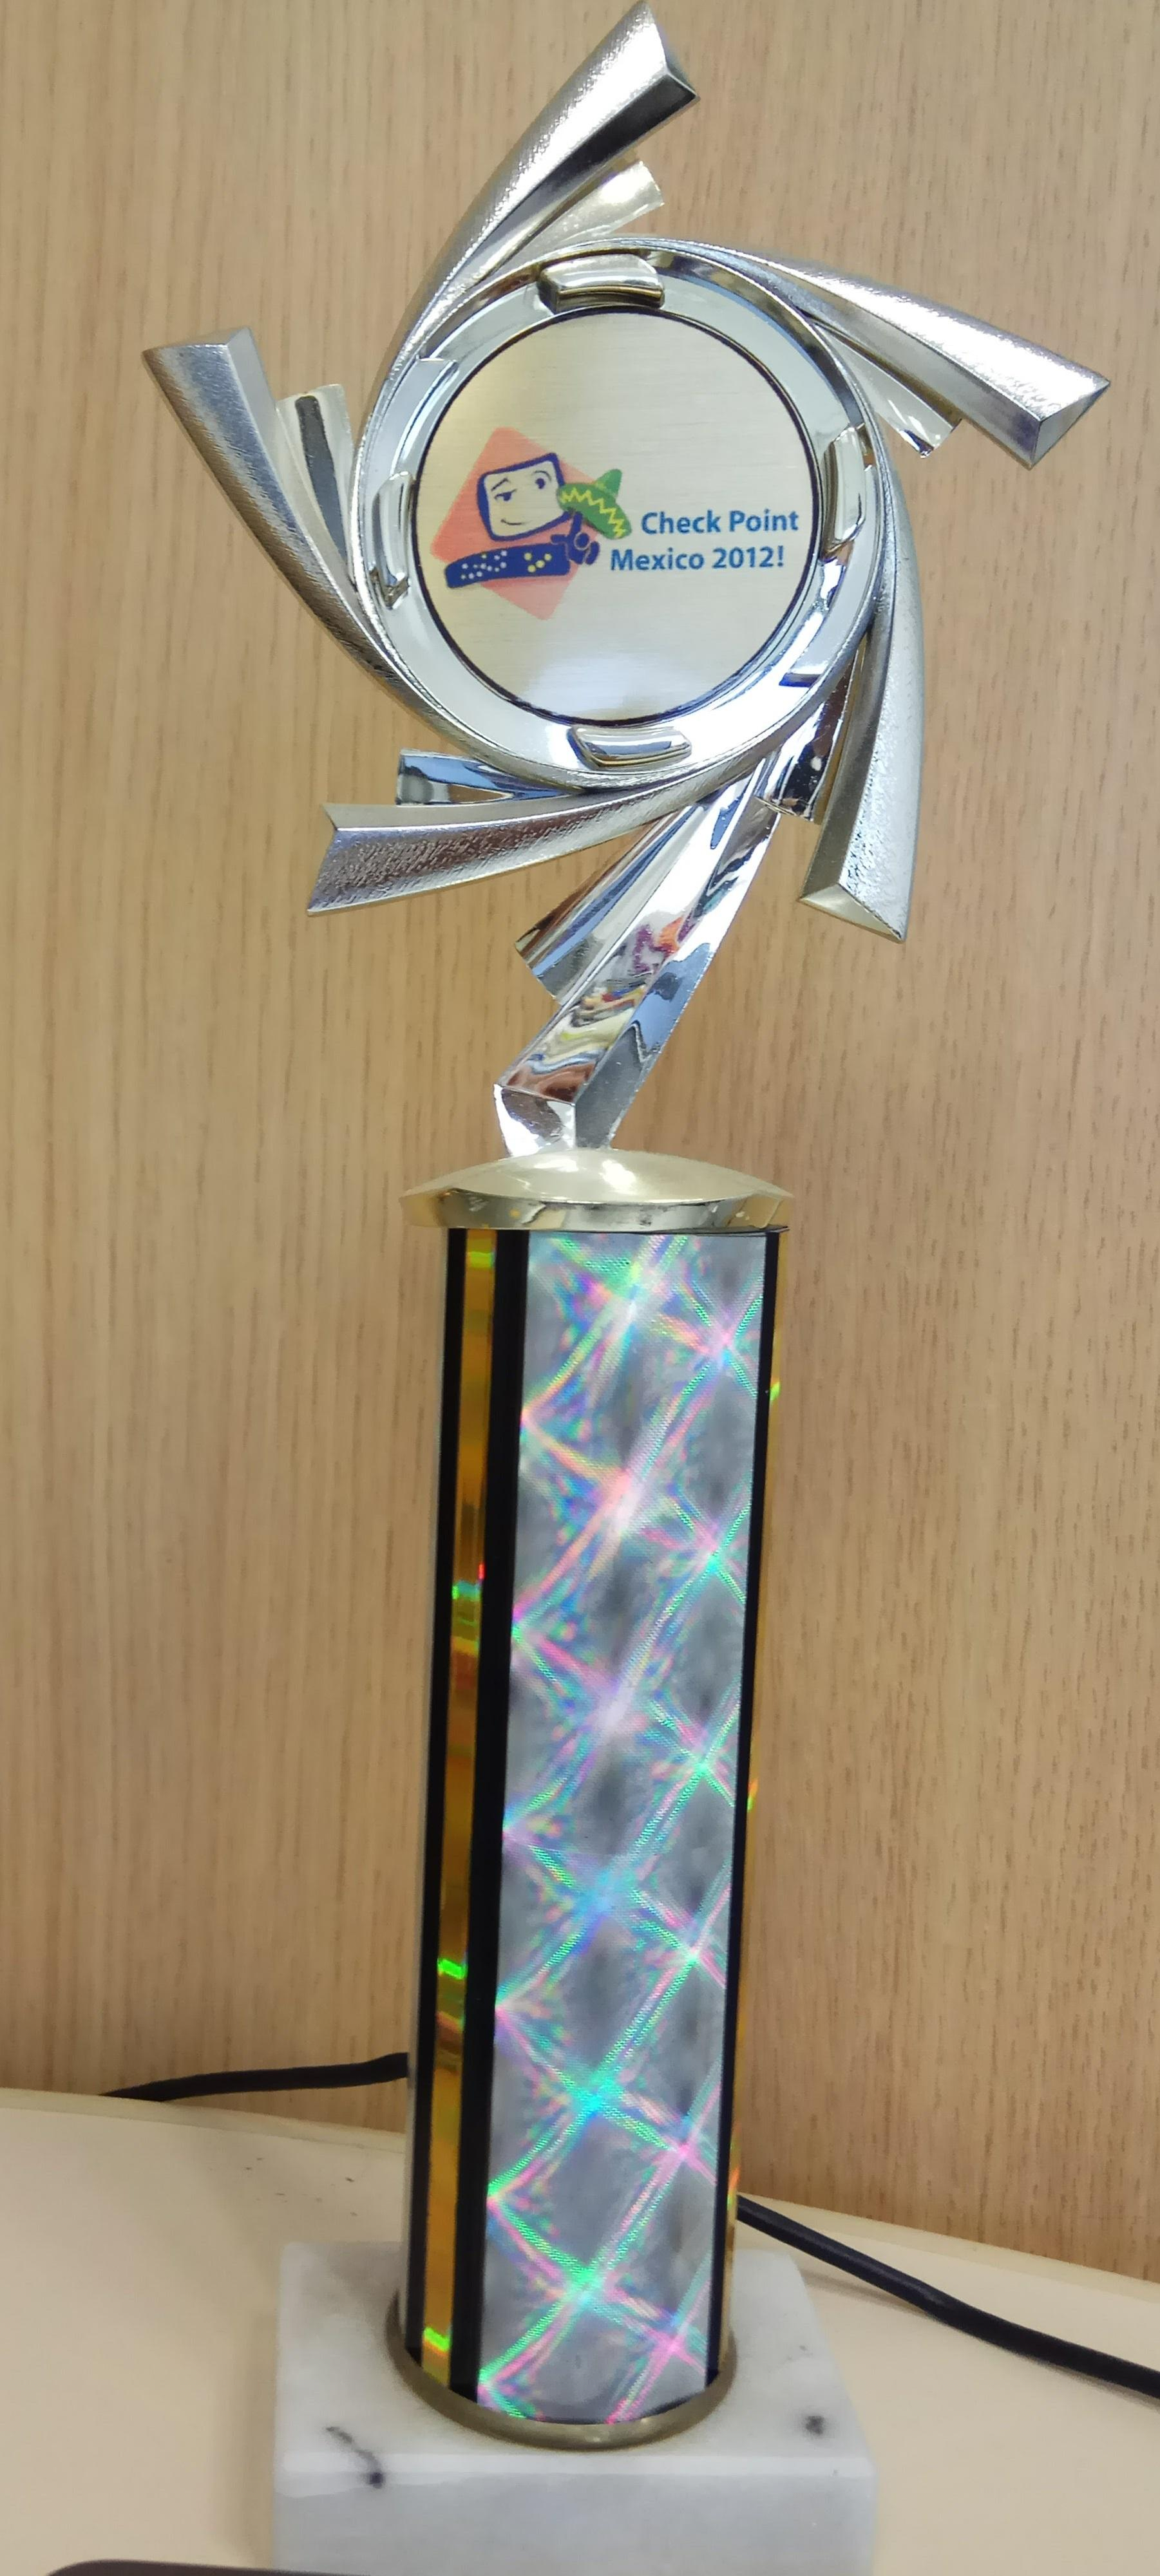 Mexico 2012 Trophy